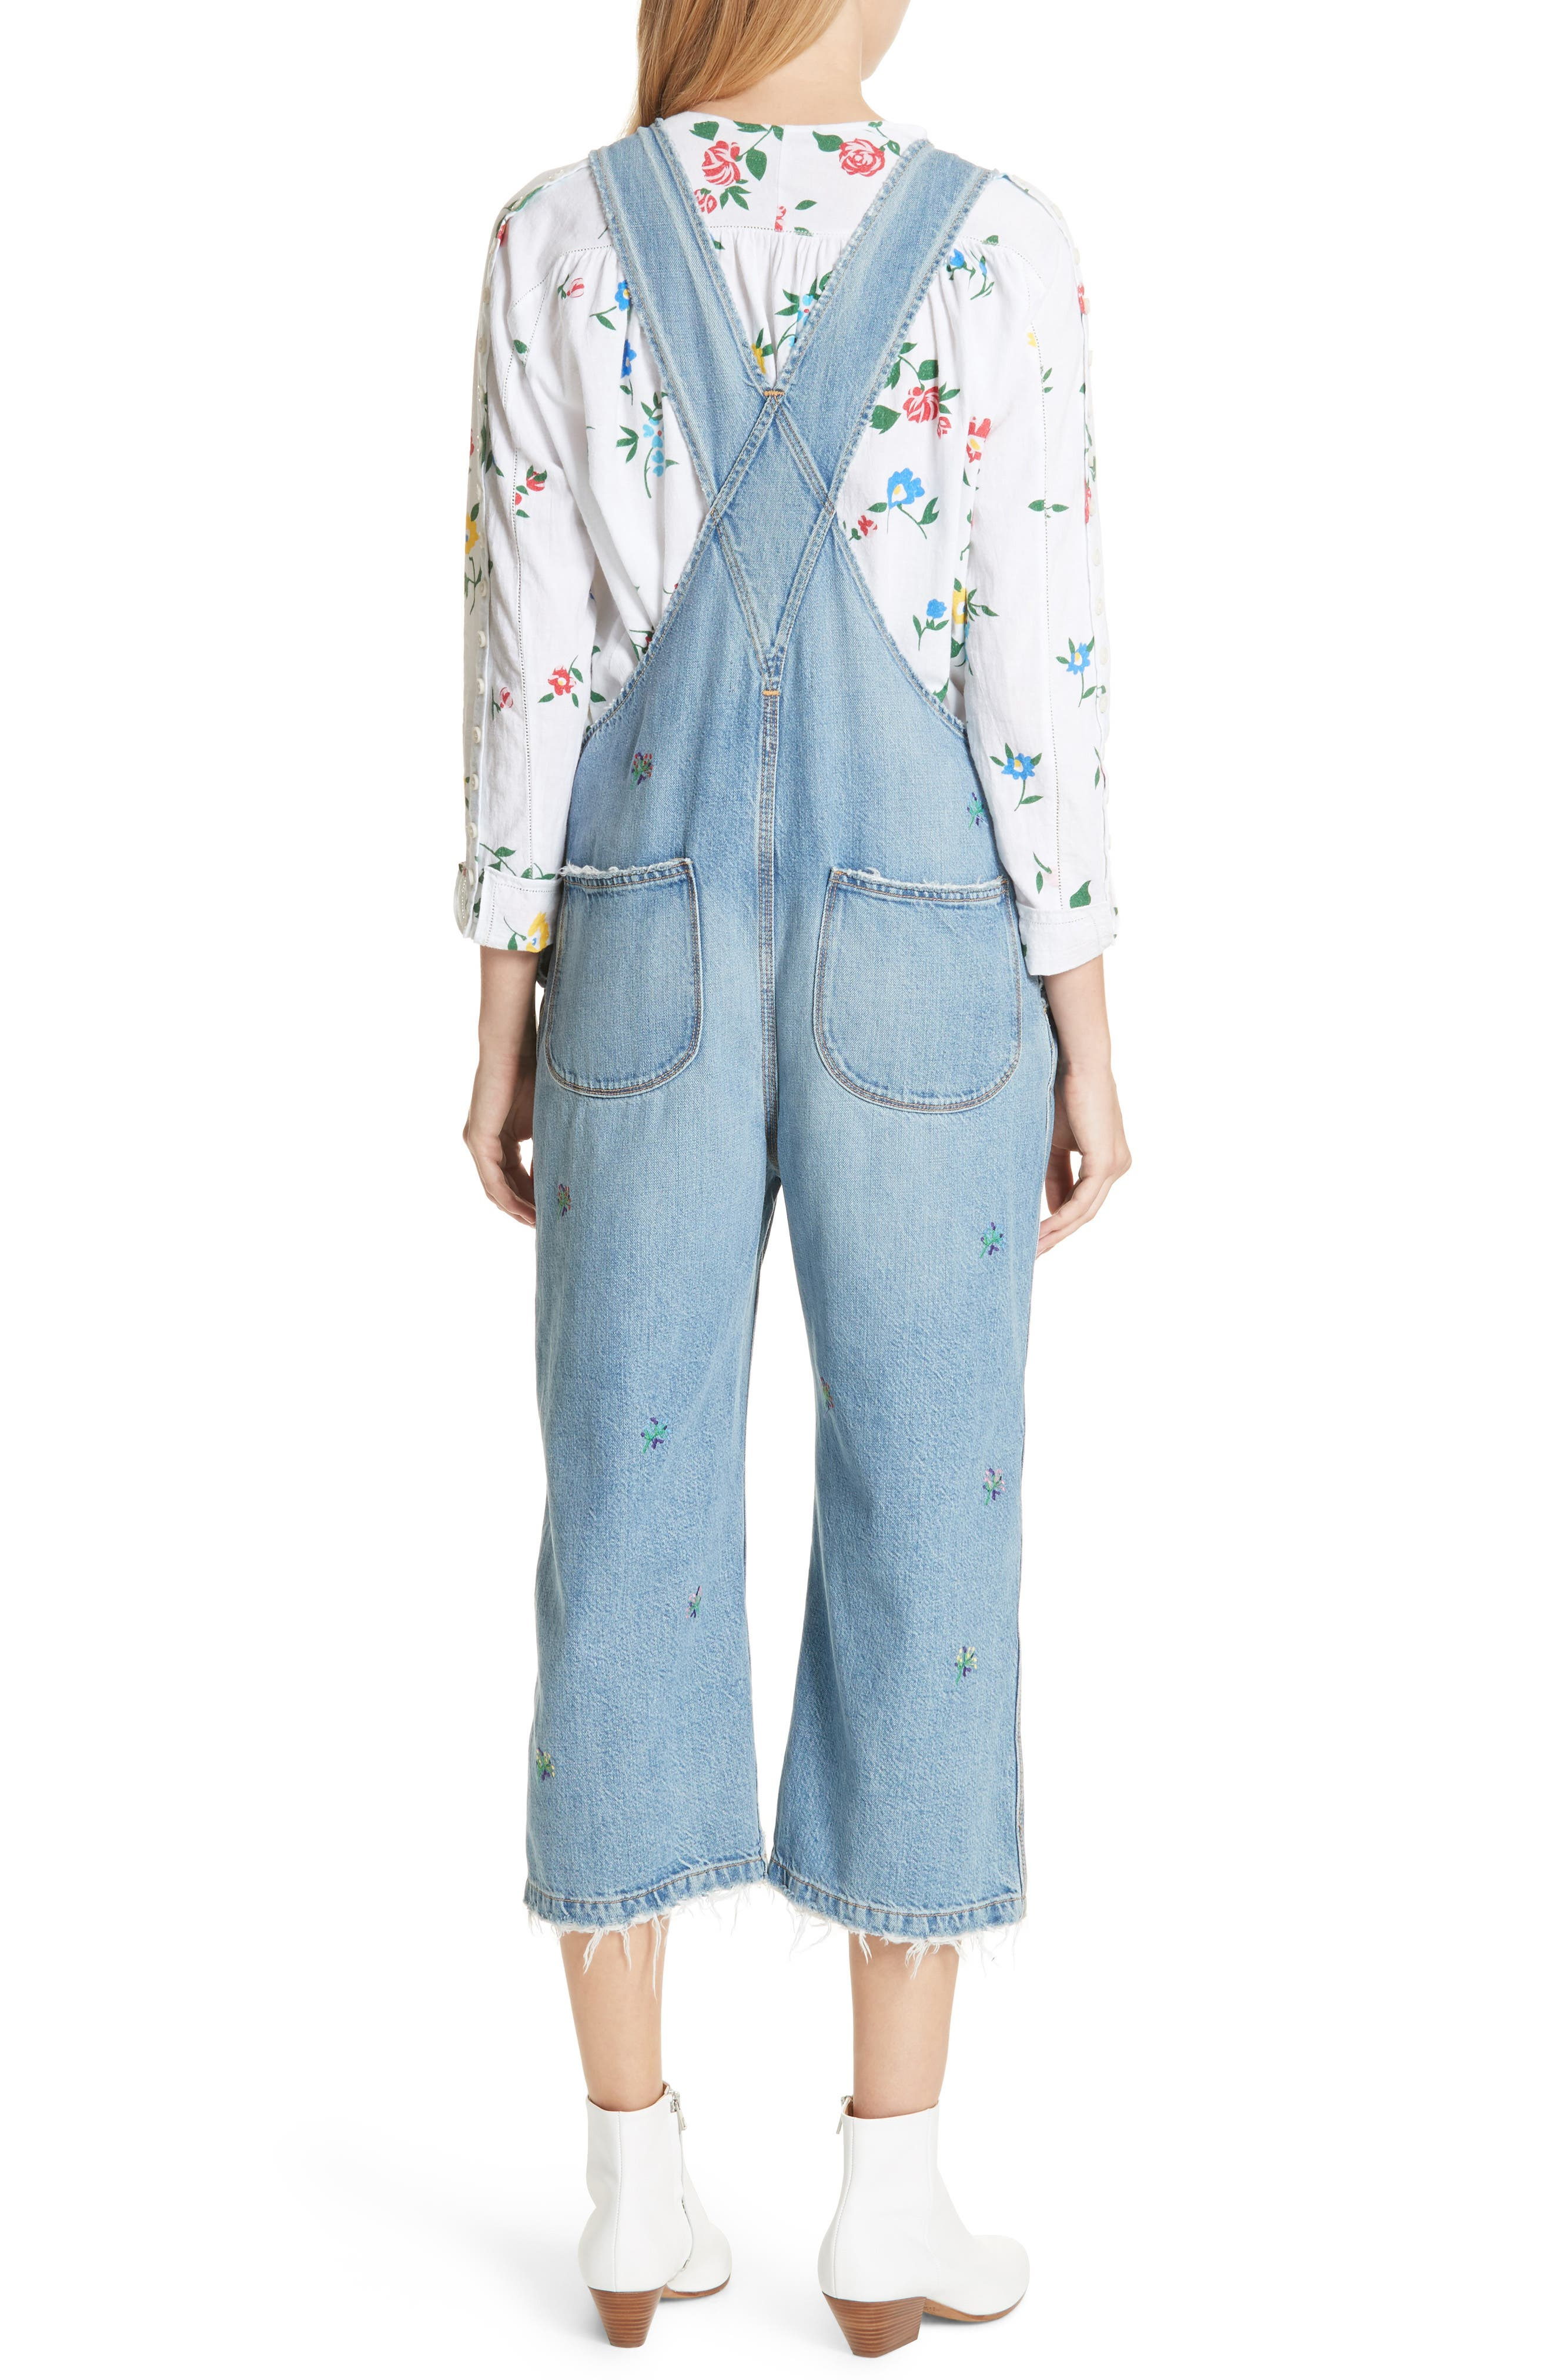 The Shop Embroidered Overalls,                             Alternate thumbnail 3, color,                             Canteen Wash W/ Flower Emb